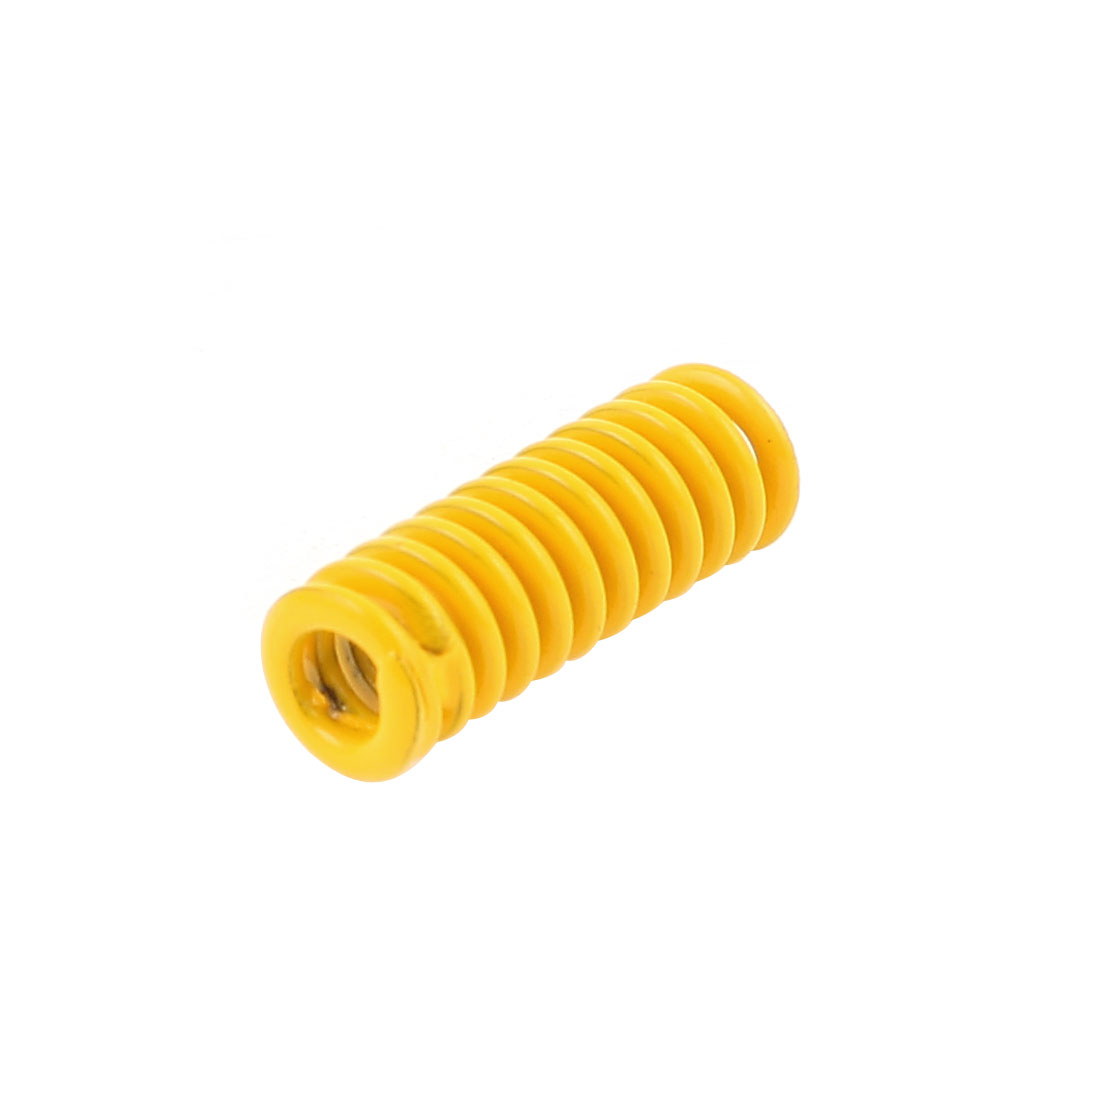 Yellow Alloy Steel Light Load Press Flat Coil Compression Die Spring 6mm x 3mm x 15mm